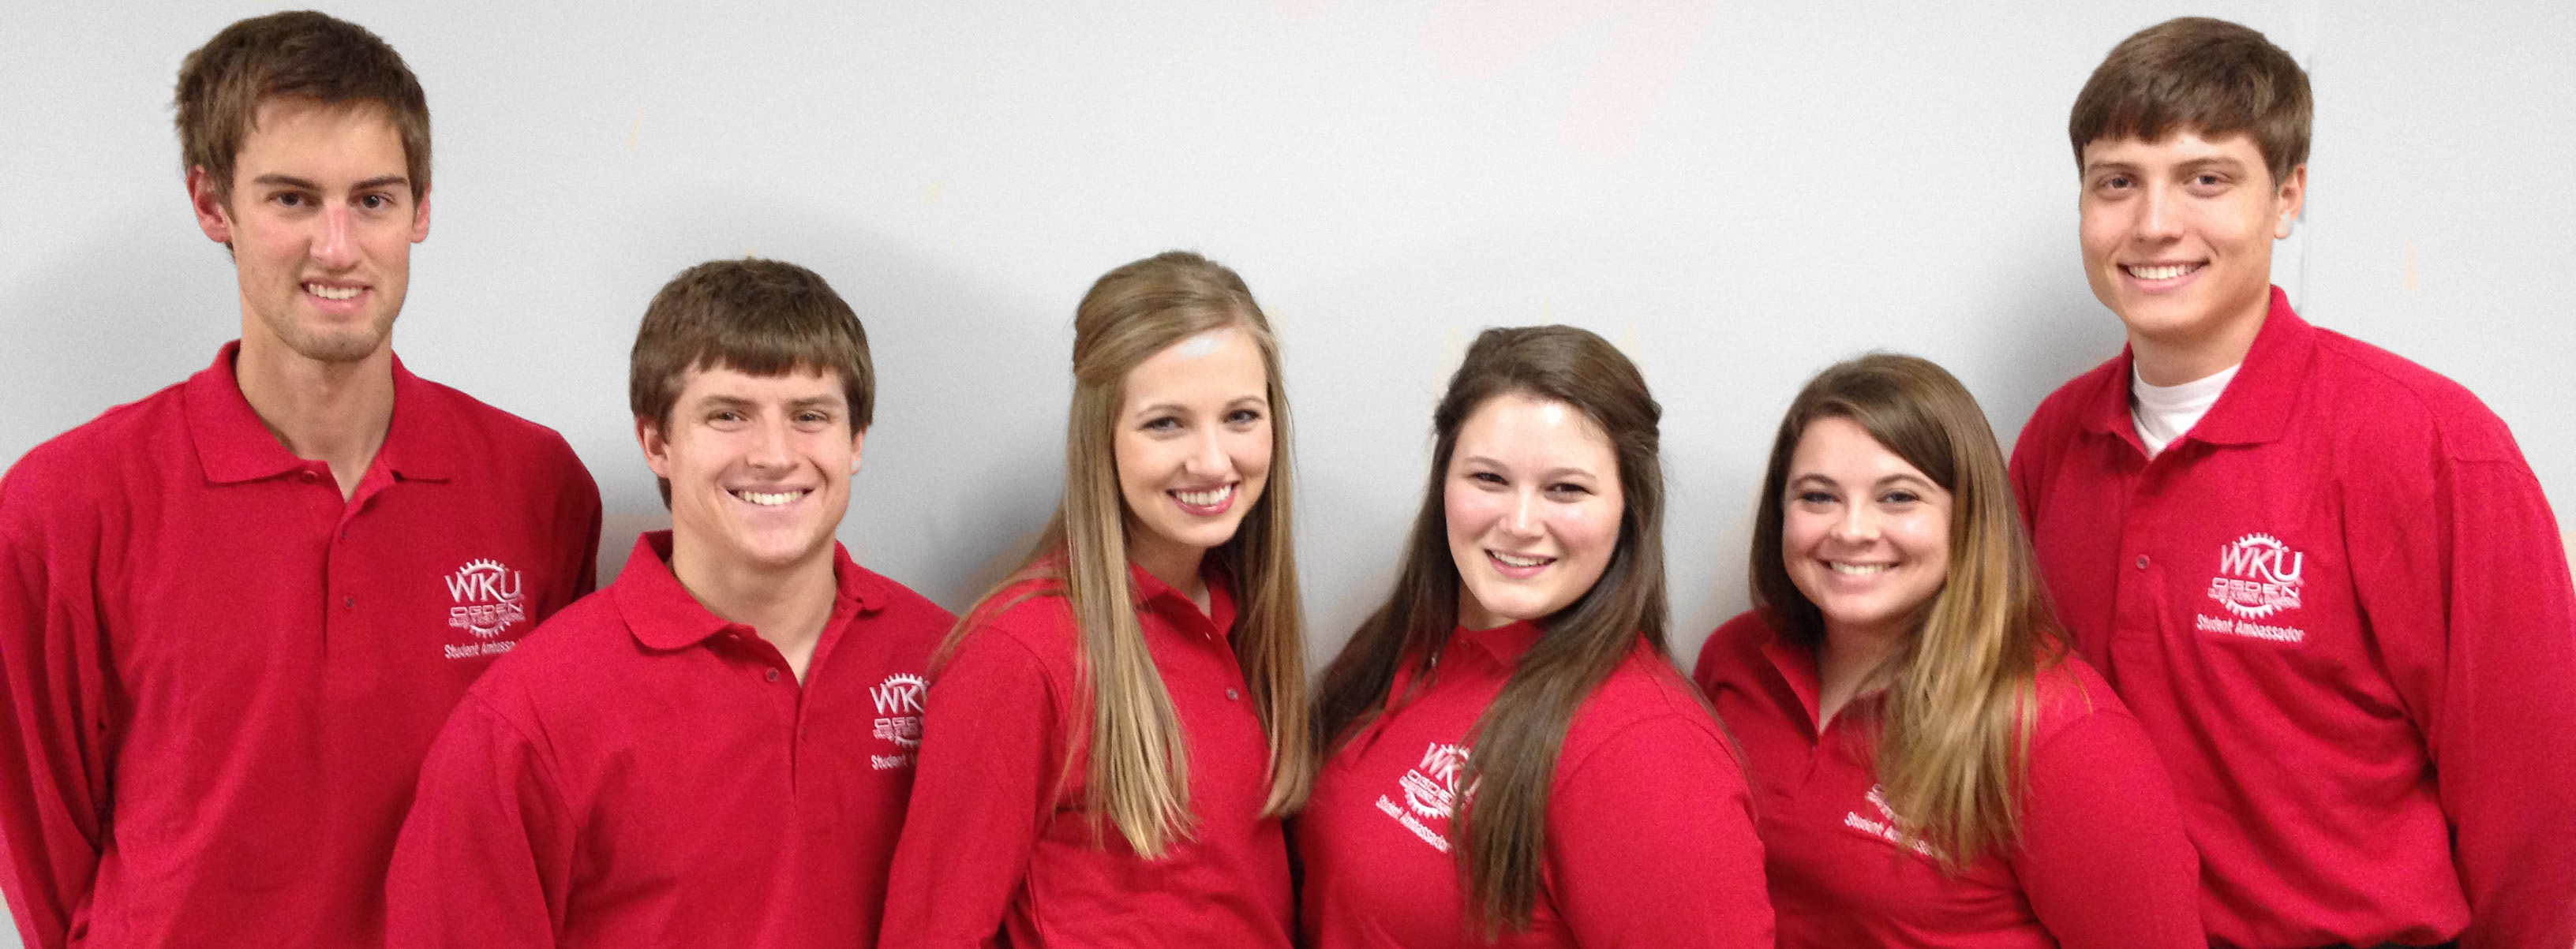 Ogden College Student Ambassadors. From left to right: Blake Neumann (Geography, Environmental & Sustainable Development), Dylan Ward (Civil Engineering), Ellen Vice (Biology, Pre-Dental), Chelsea Martin (Chemistry), Tori Hampton (Meteorology) &  Spencer Wright (Biology, Pre-Dental)